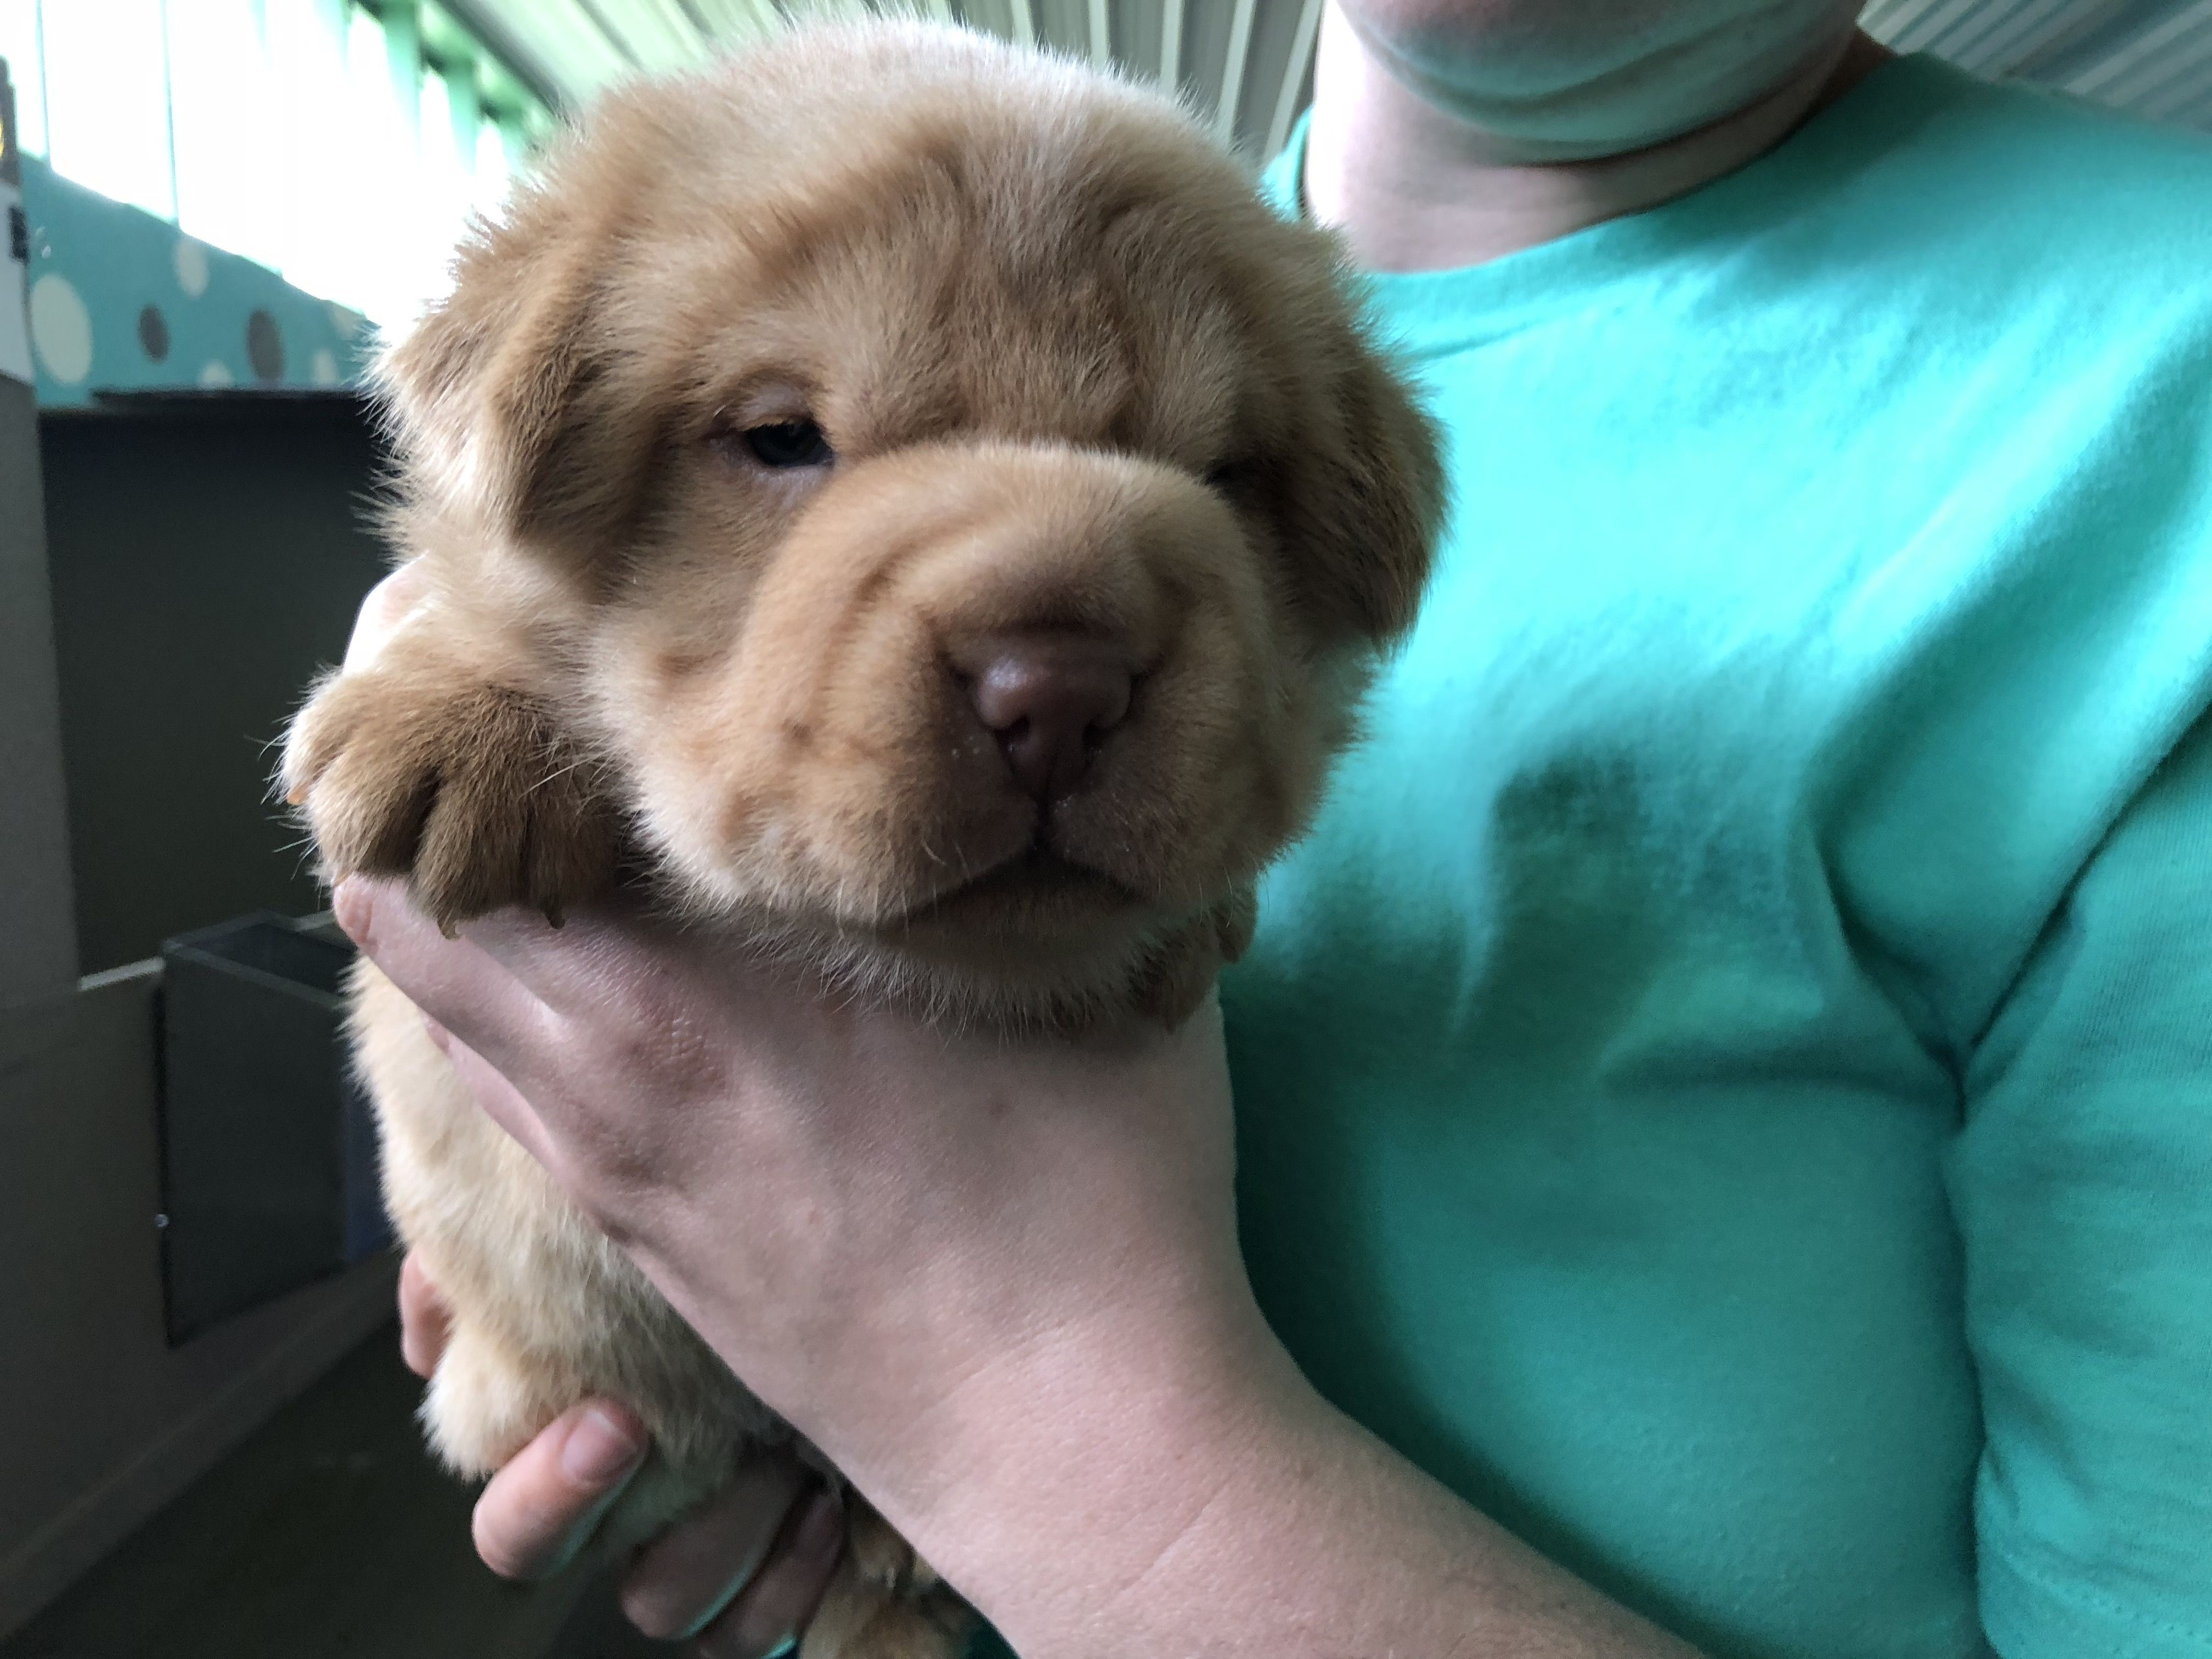 Dogs And Puppies For Sale Petland Novi Michigan Puppy Store Puppy Store Lab Puppies Puppies For Sale